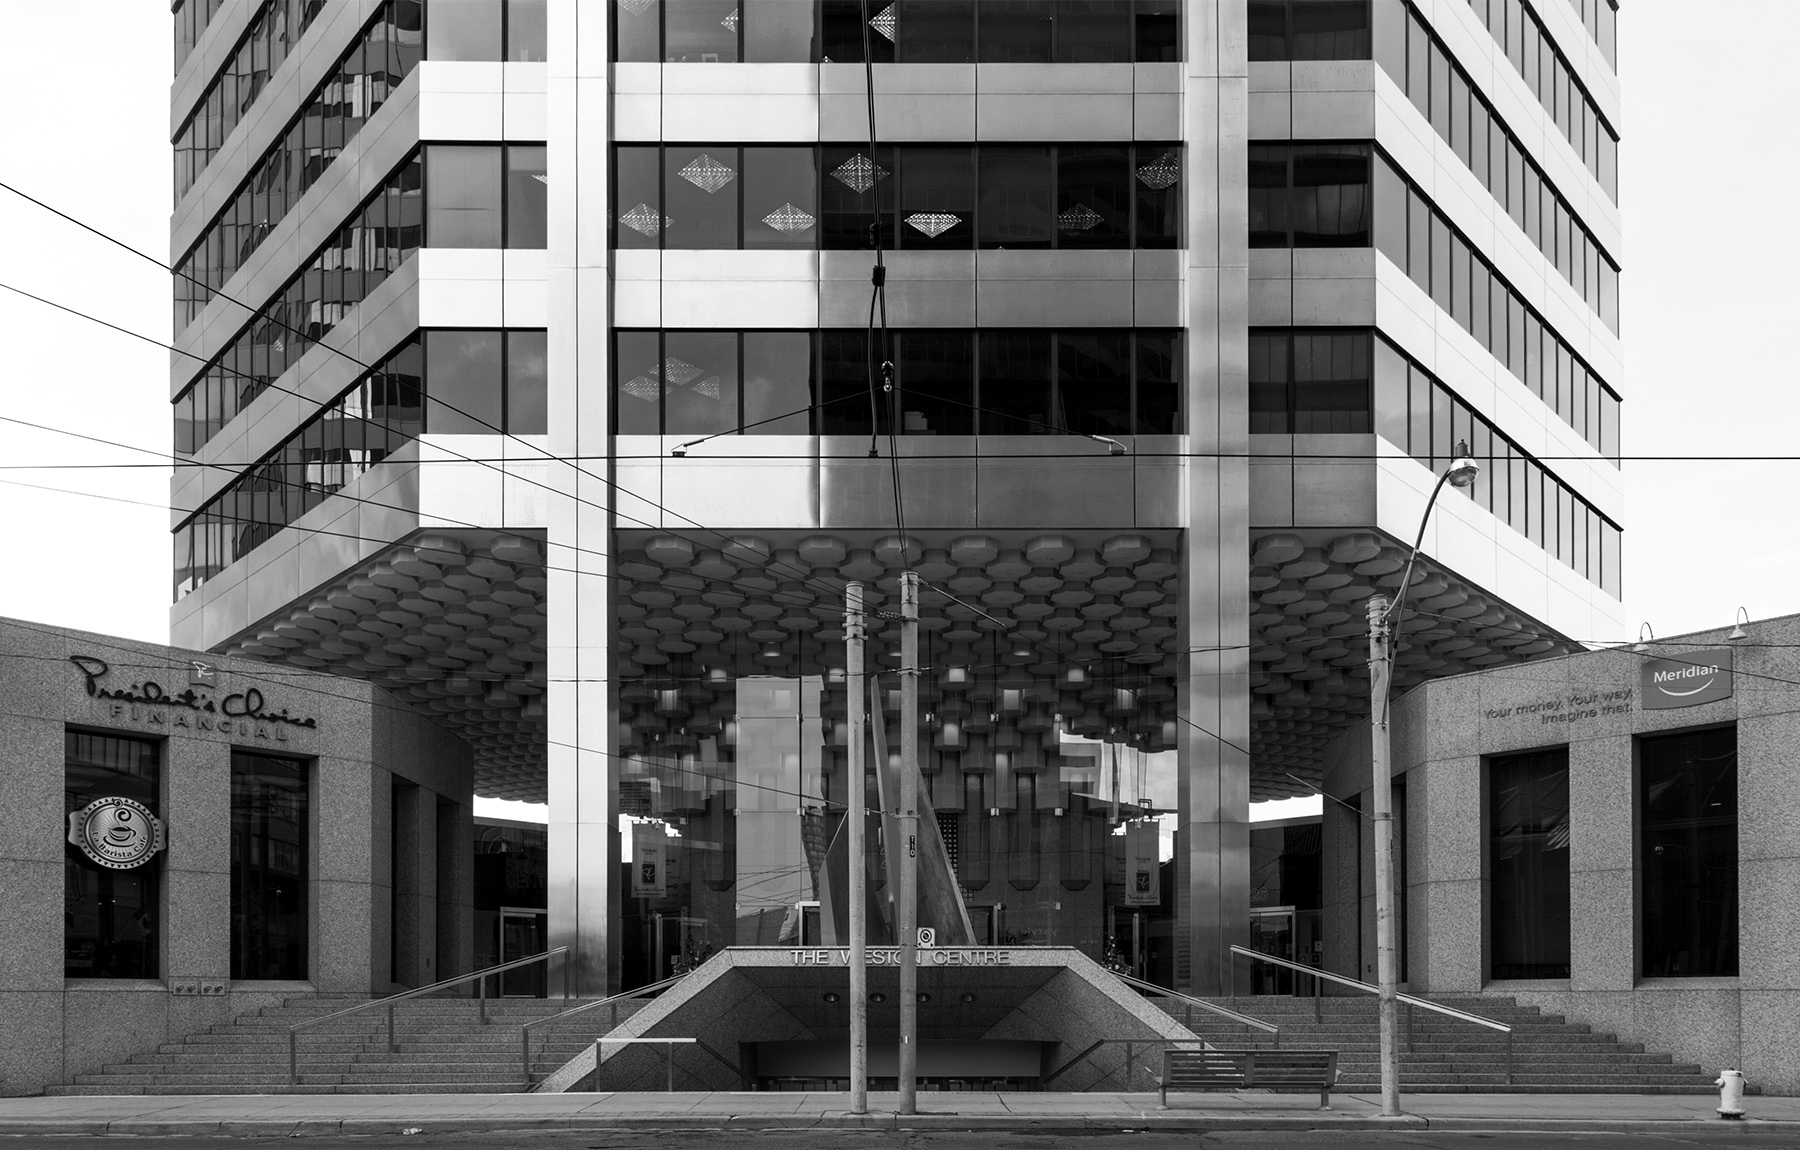 20160707. Toronto's octagonal, stainless-steel clad and still cu